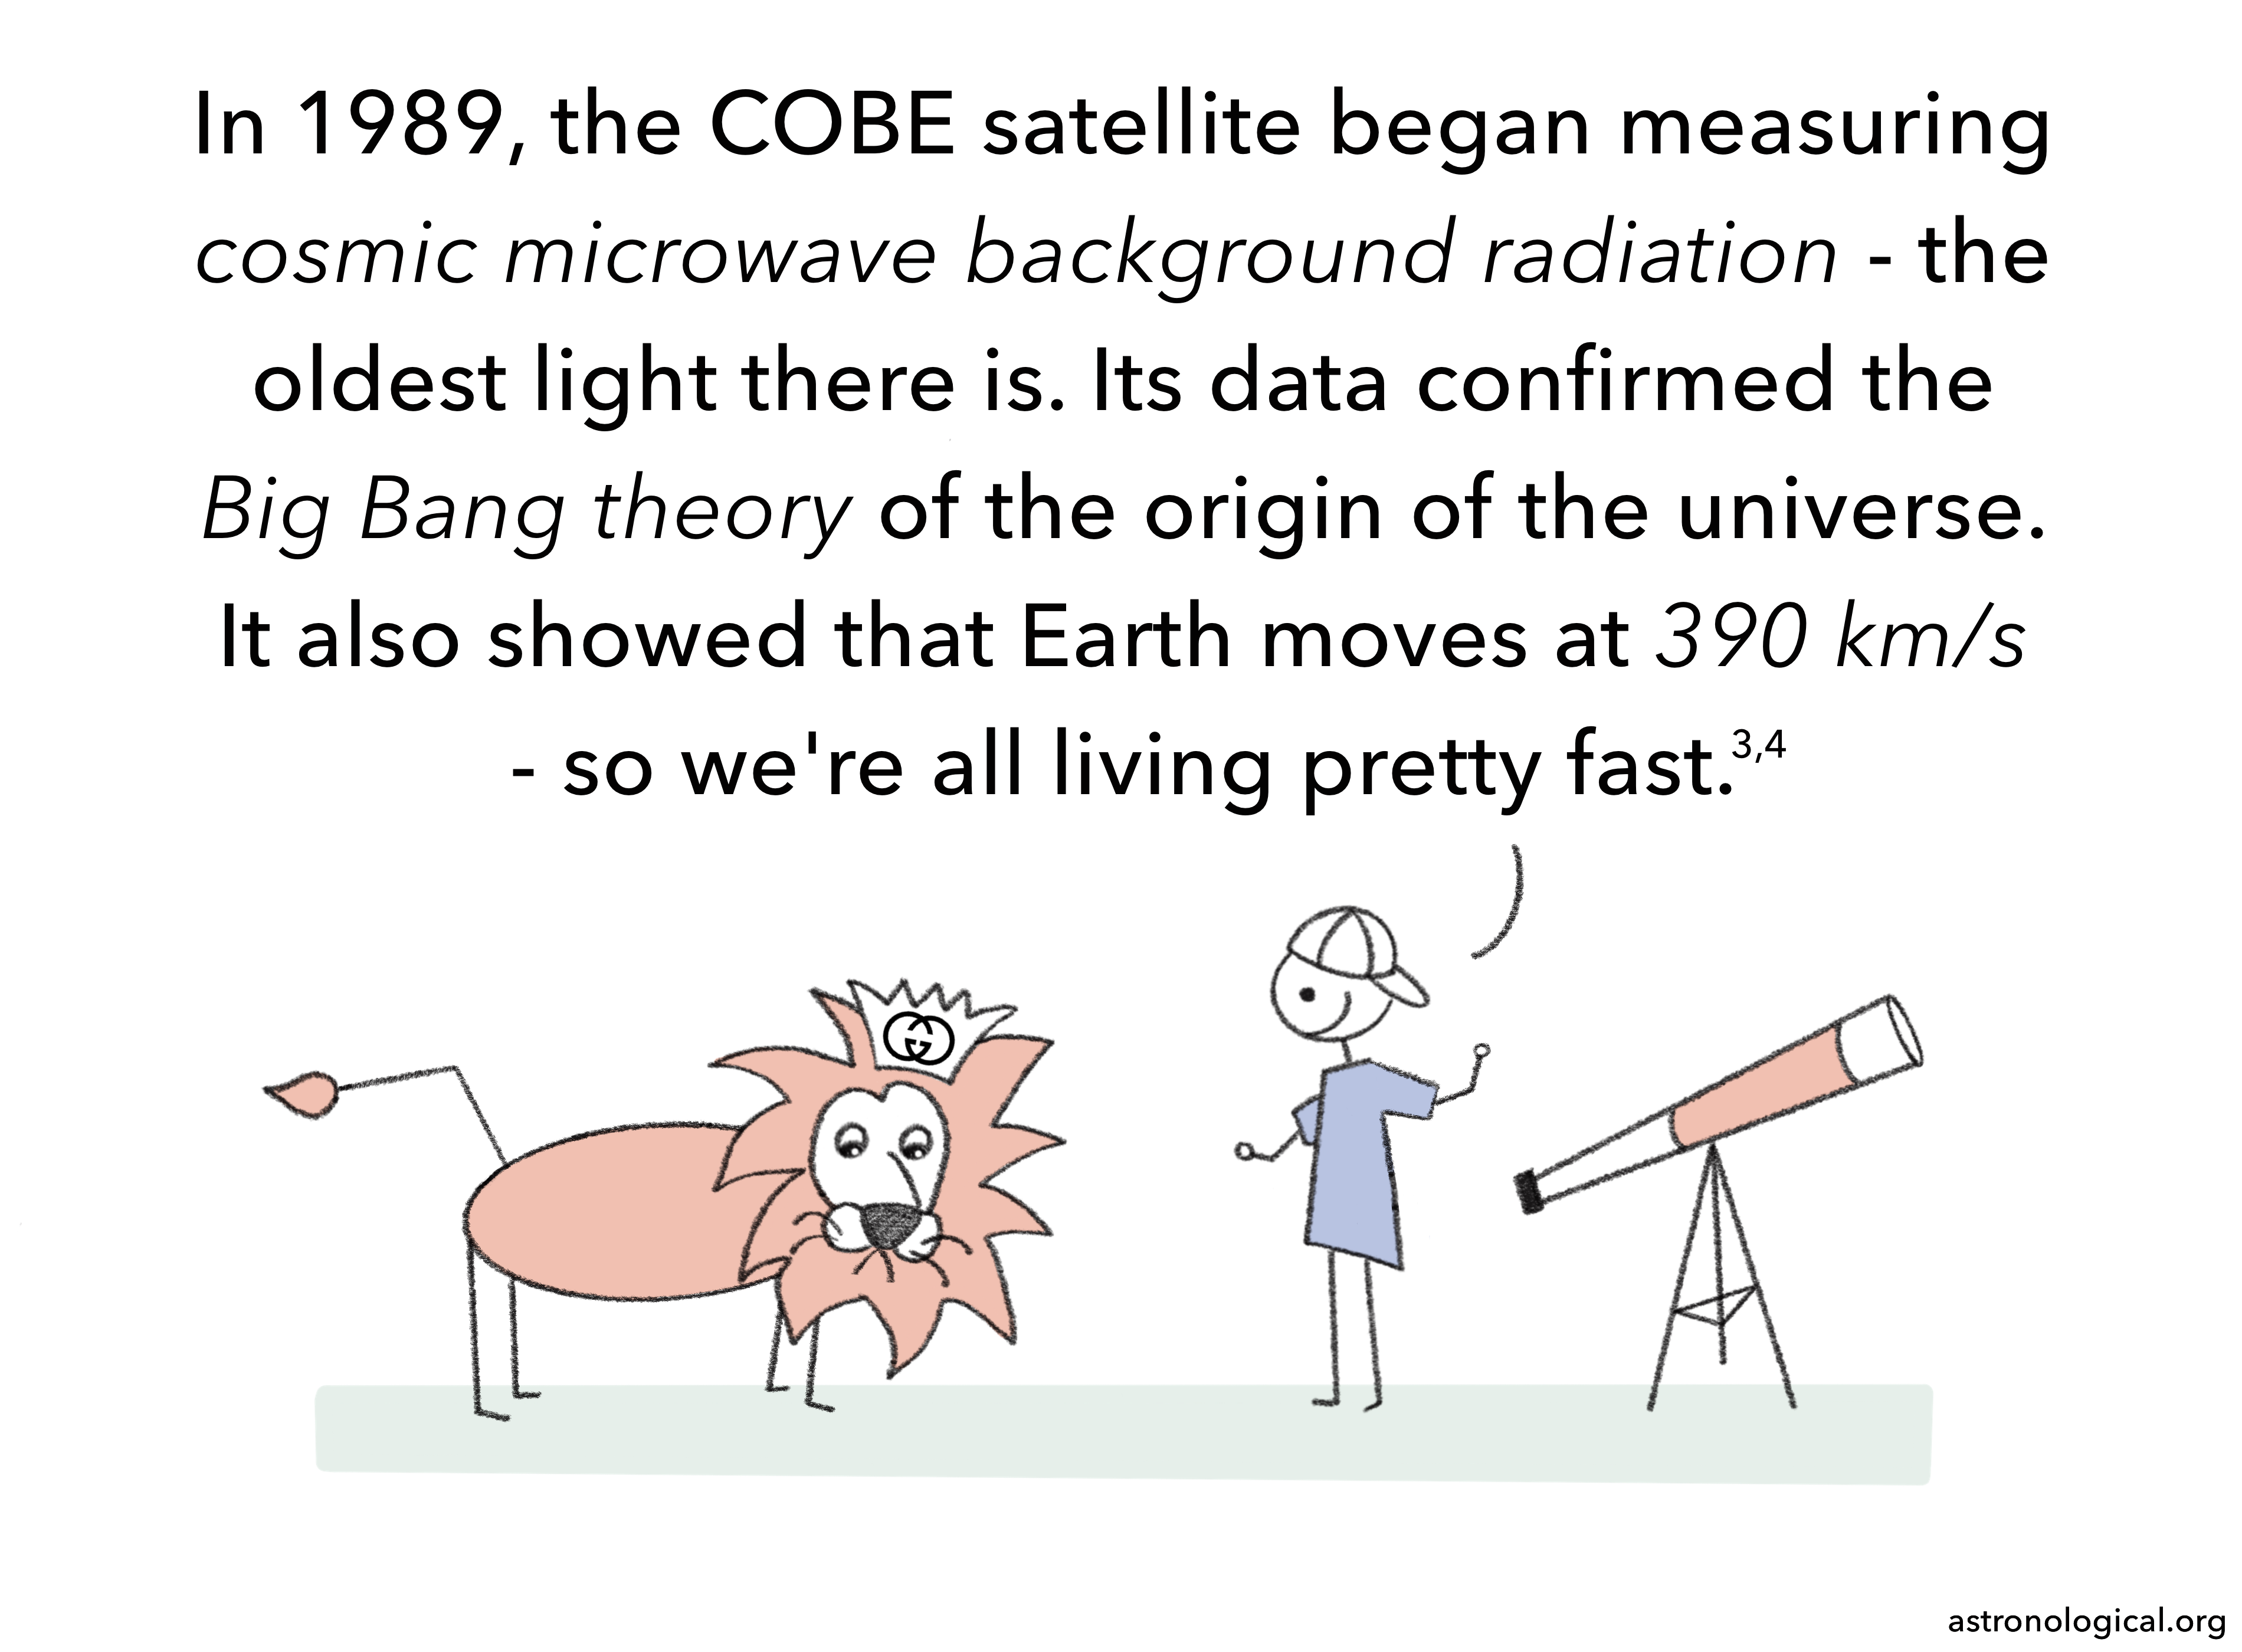 The scientist continues enthusiastically: In 1989, the COBE satellite began measuring cosmic microwave background radiation - the oldest light there is. Its data confirmed the Big Bang theory of the origin of the universe. It also showed that Earth moves at 390 km/s - so we're all living pretty fast. The lion looks a bit sad.